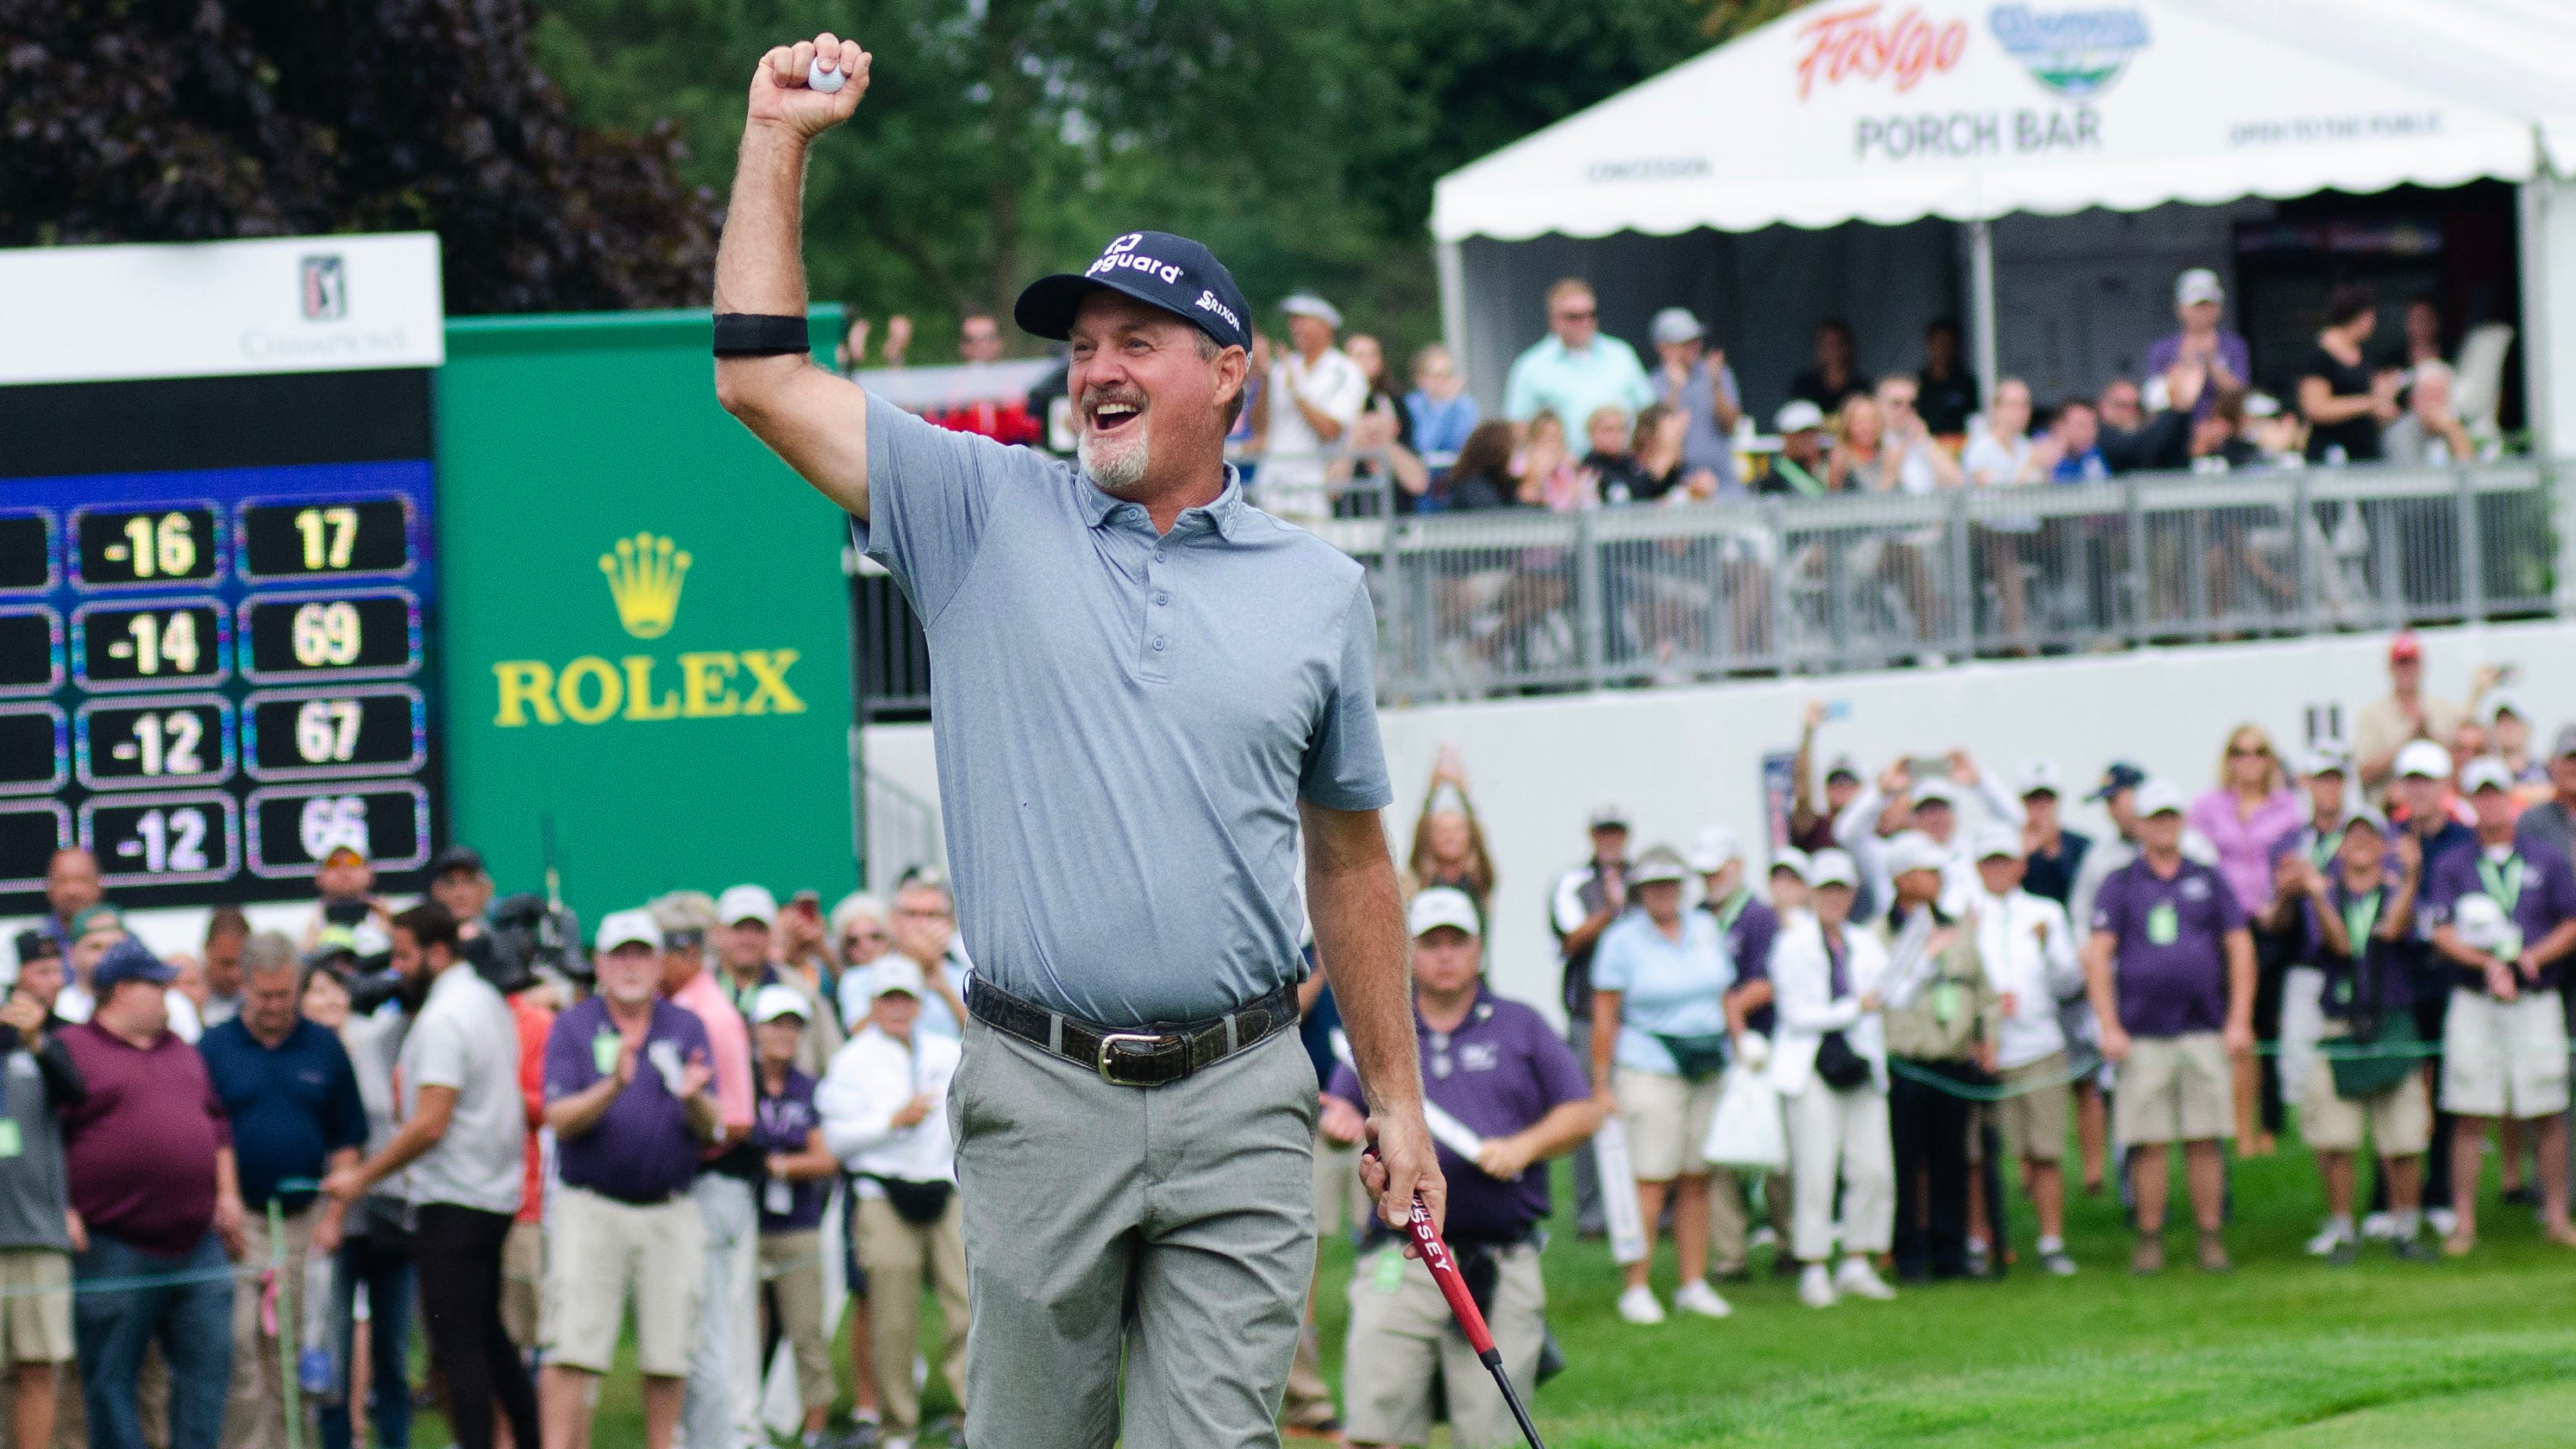 Champions Tour's Ally Challenge in Grand Blanc won't have fans, either